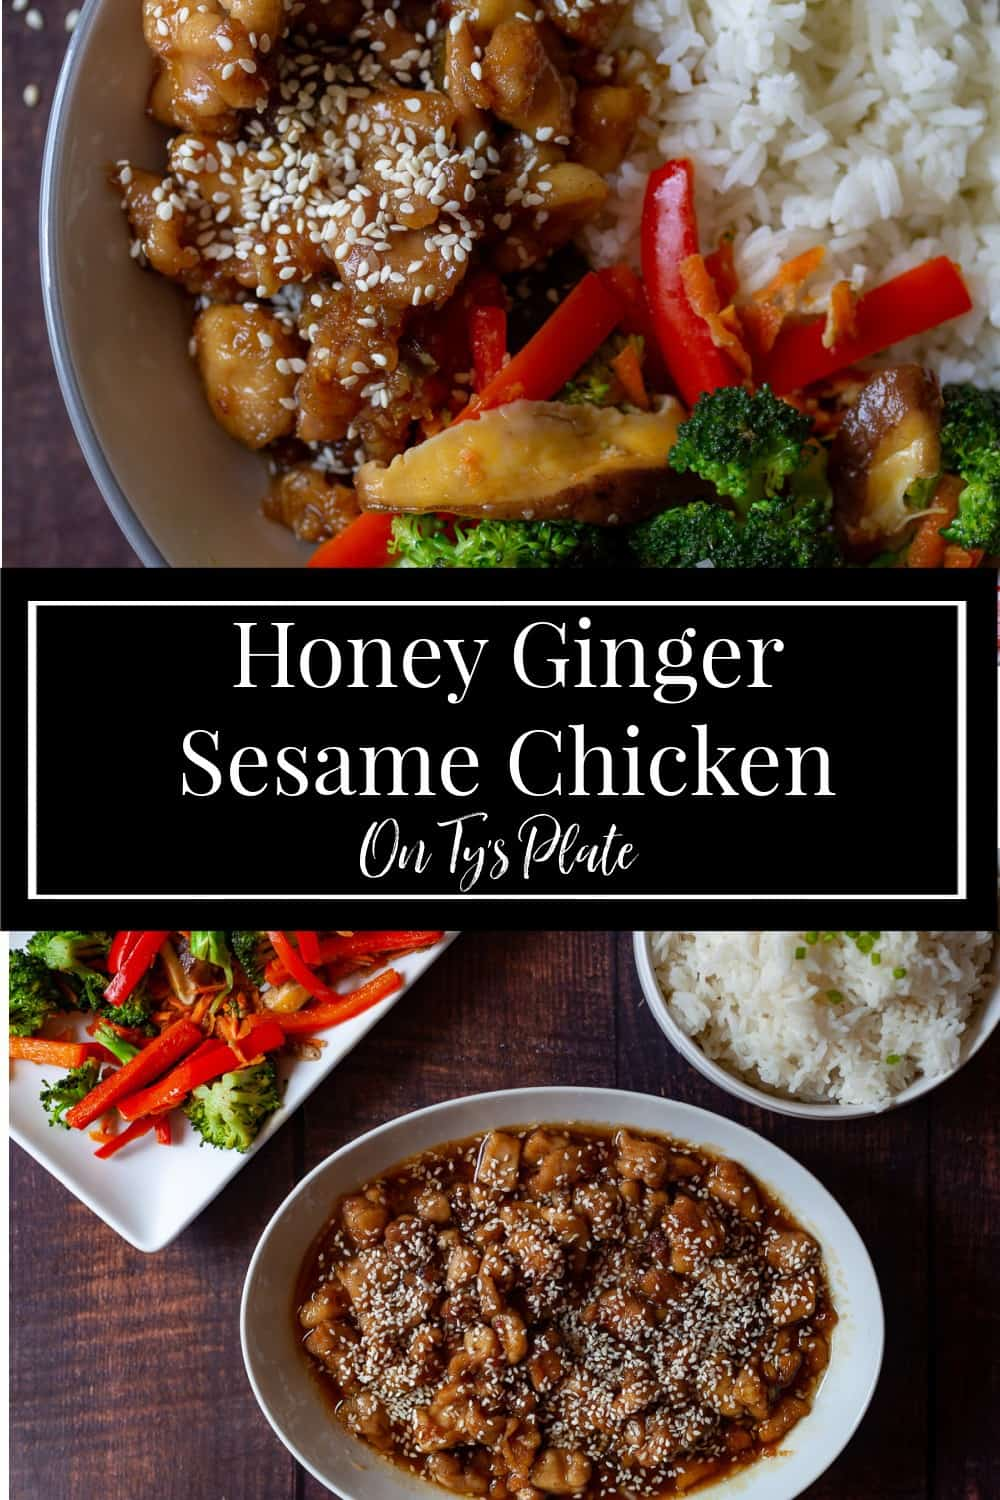 Honey Ginger Sesame Chicken